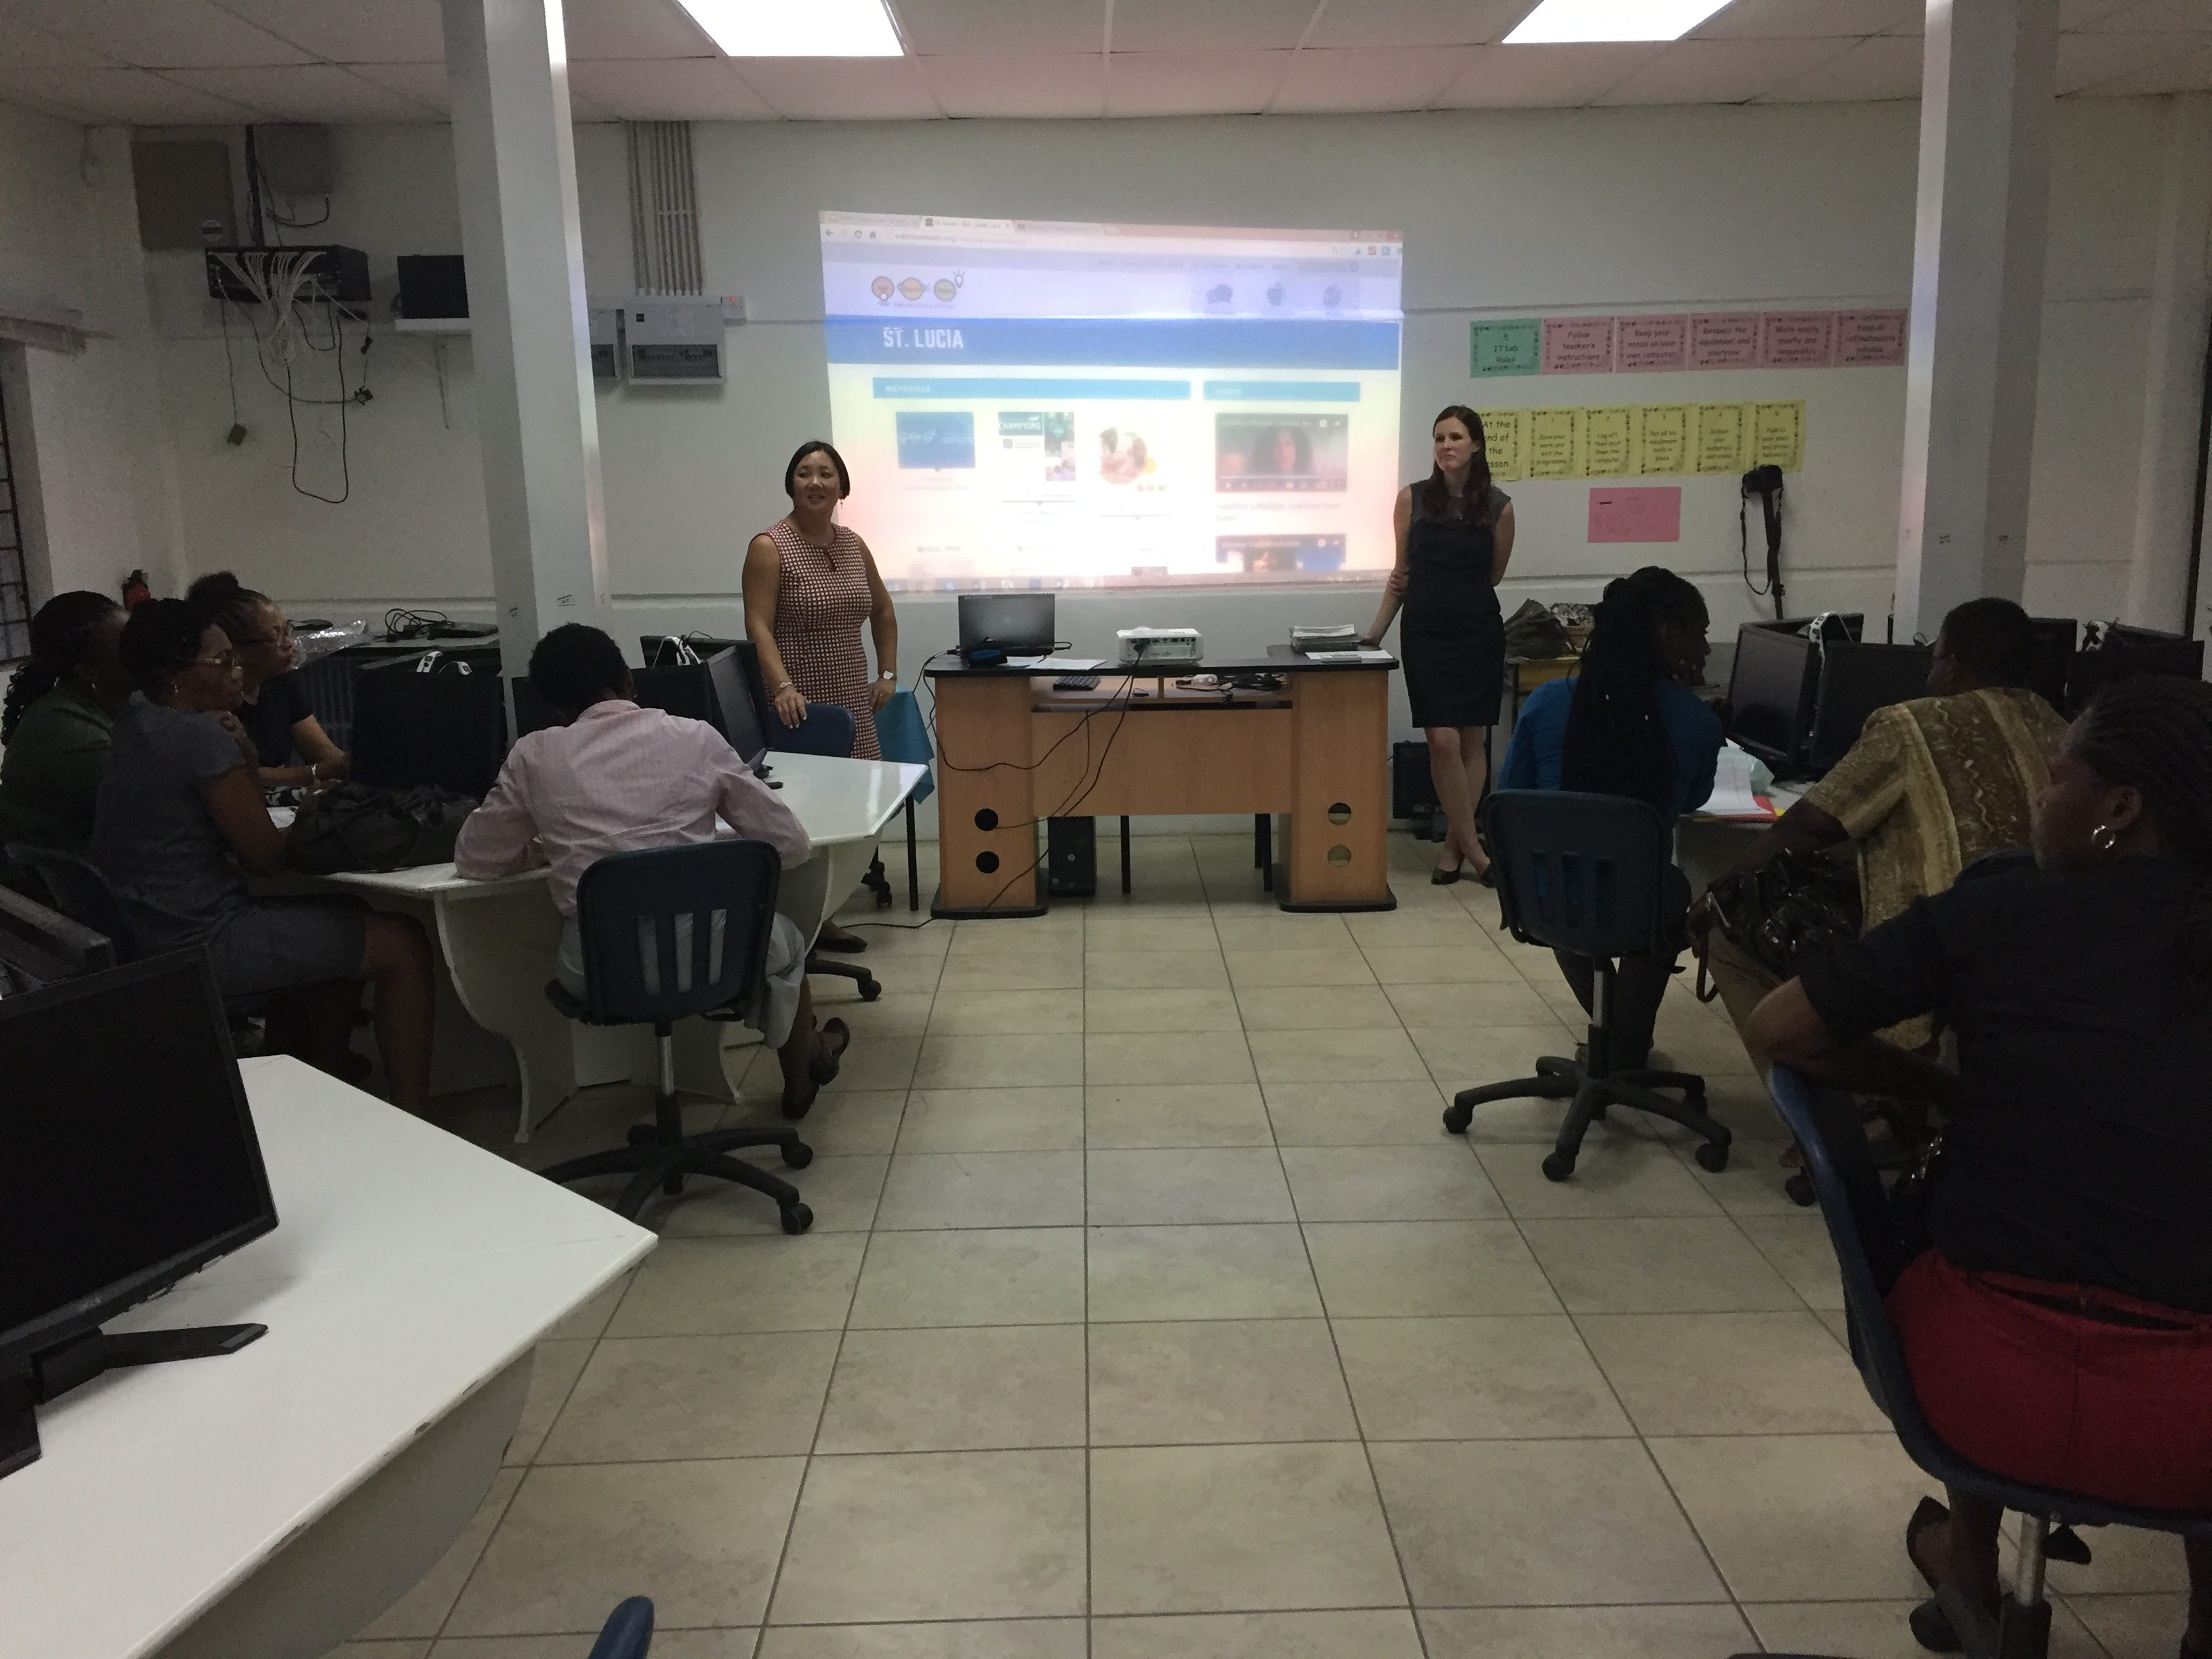 Leticia and Kristina St. Lucia - Global efforts supporting global challenges